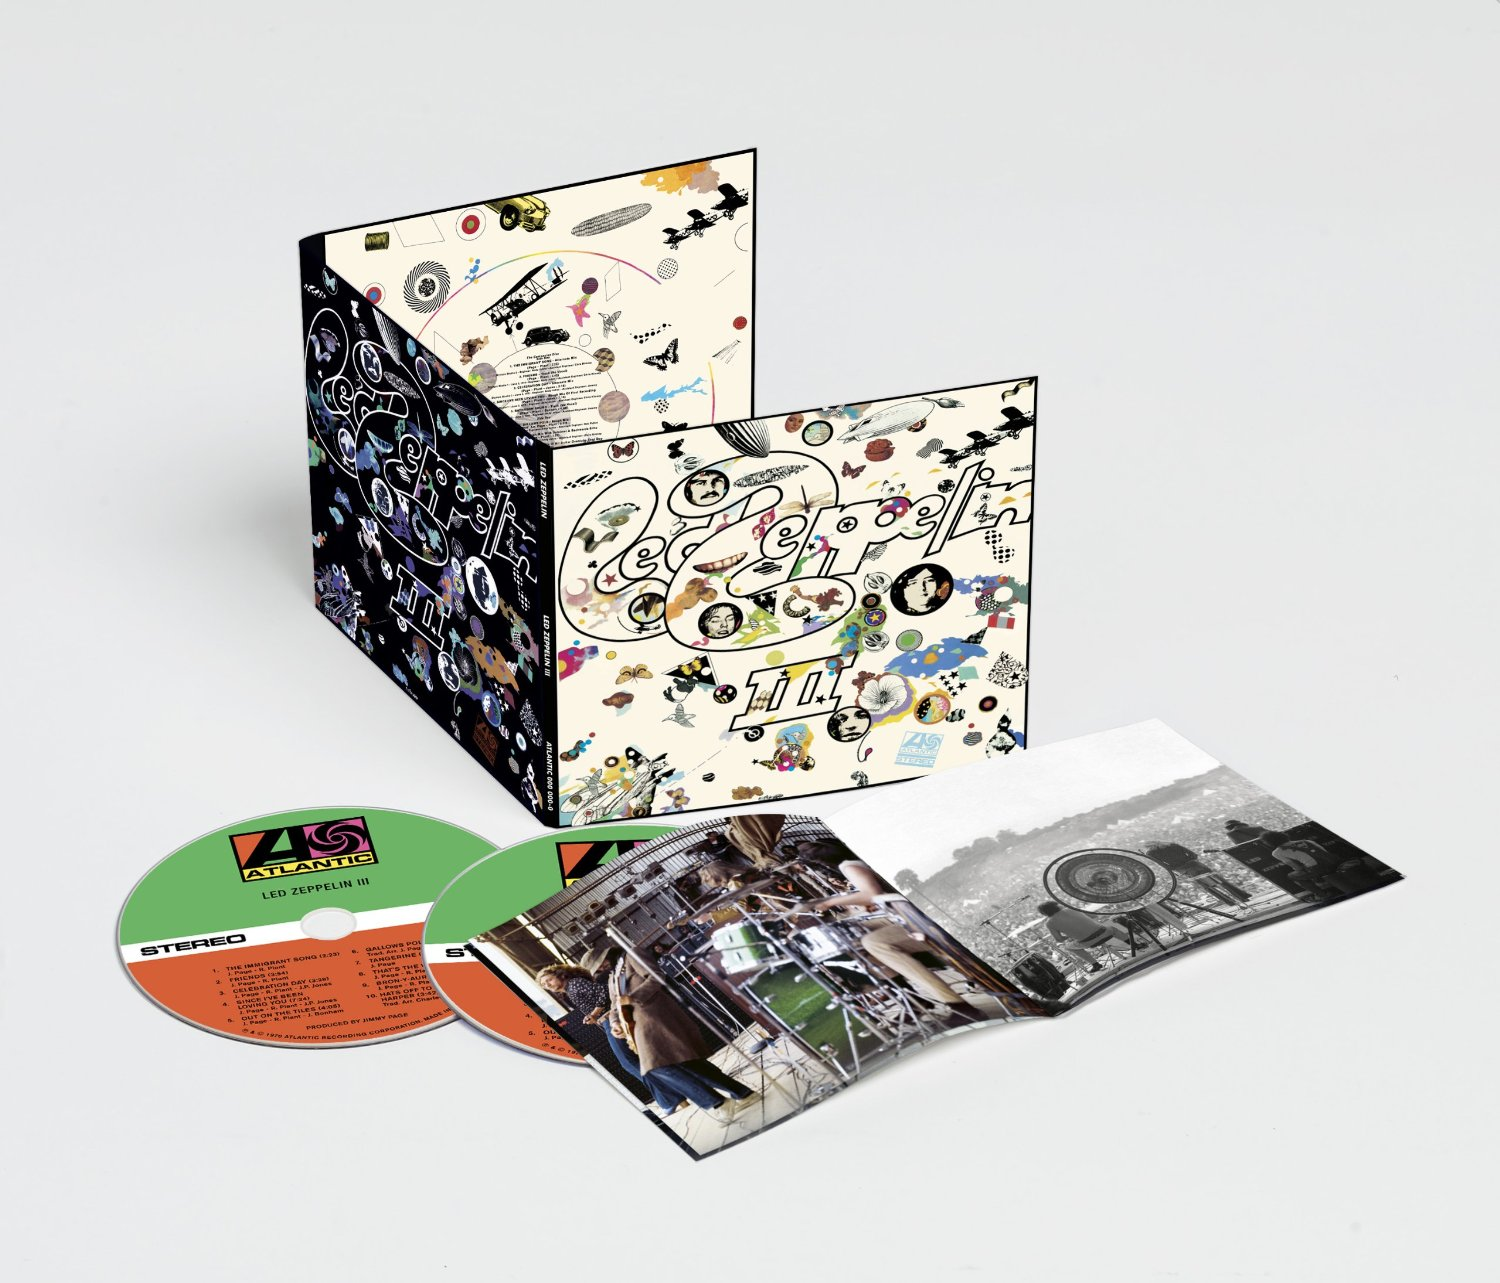 Led Zeppelin 2014 reissues / Led Zeppelin III 2CD deluxe remaster